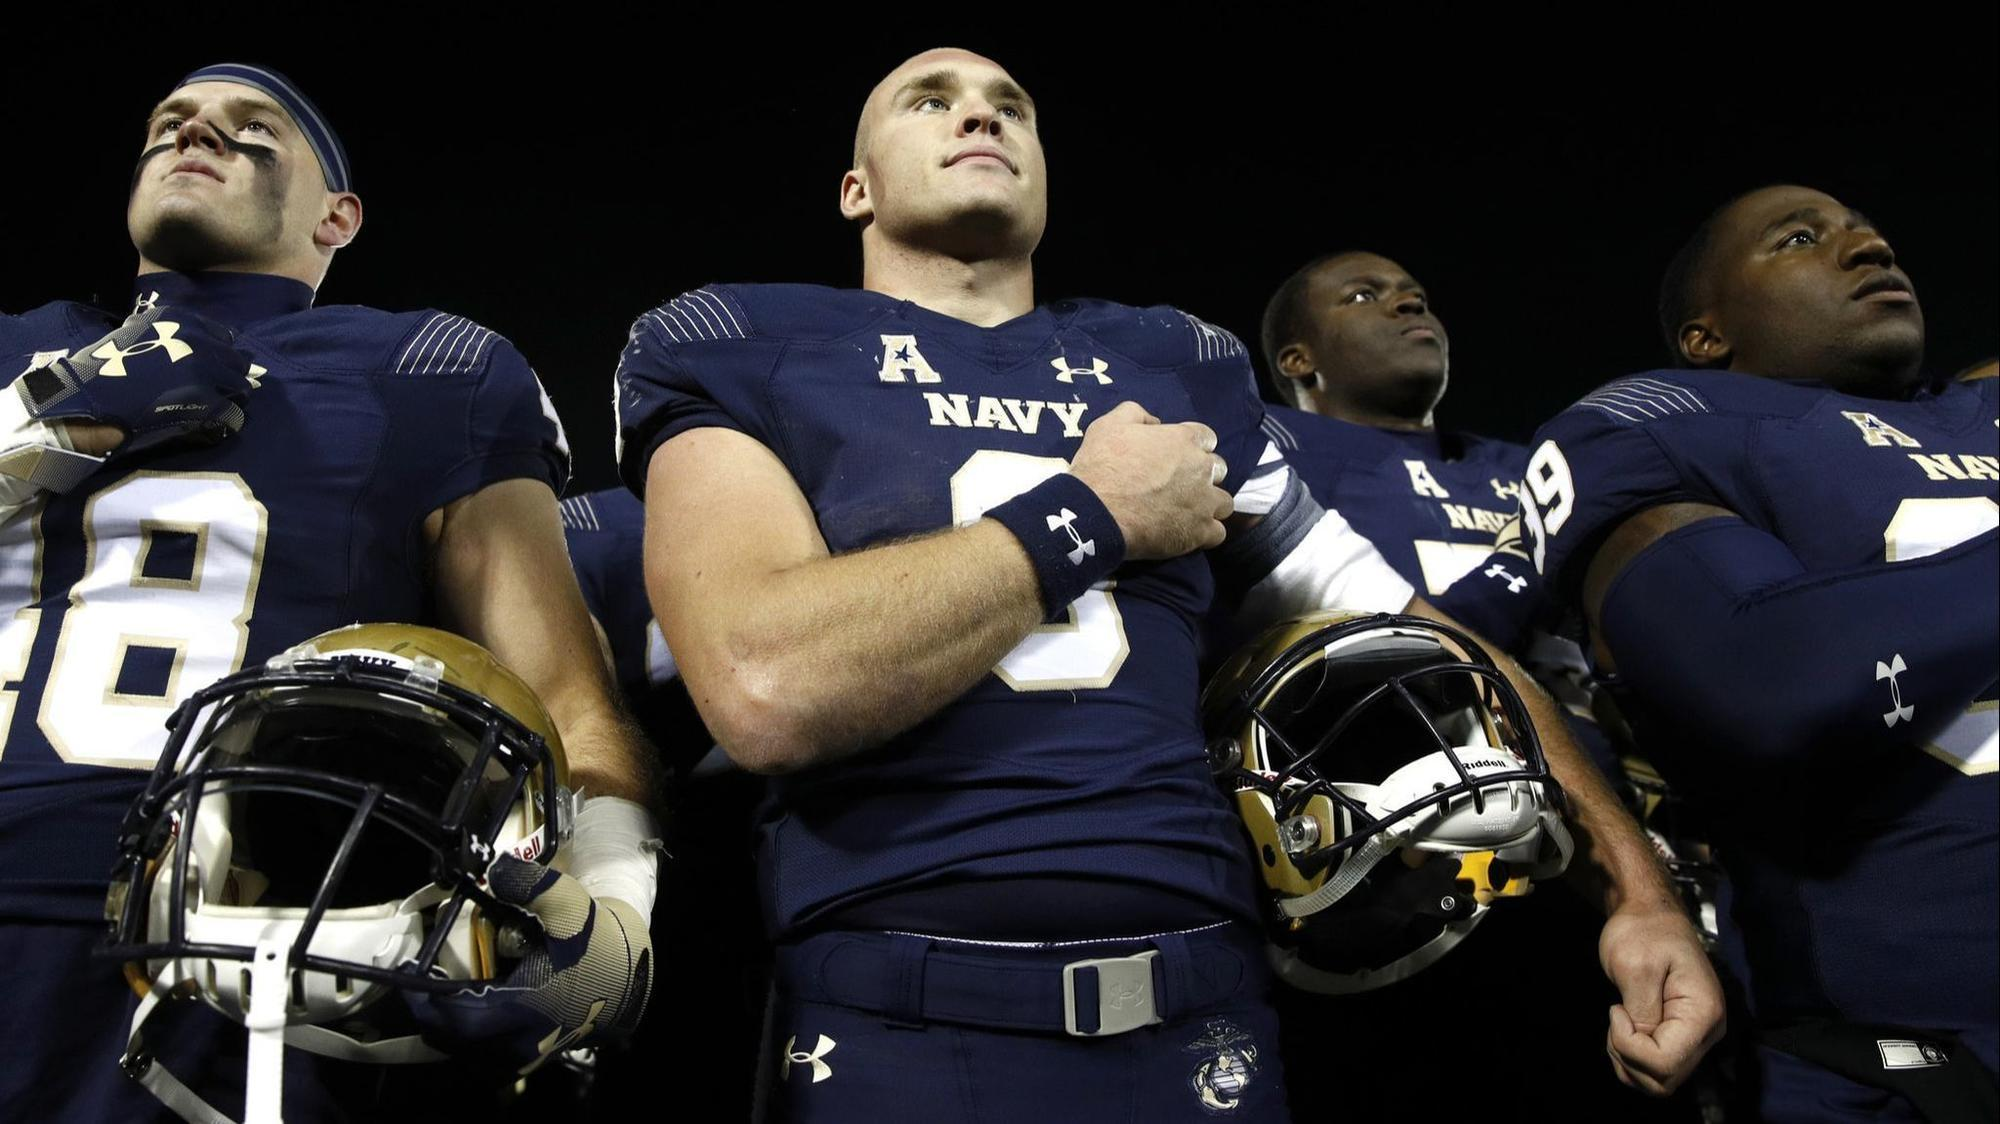 Large Numbers Of Navy Football Players Are Choosing The Marine Corps